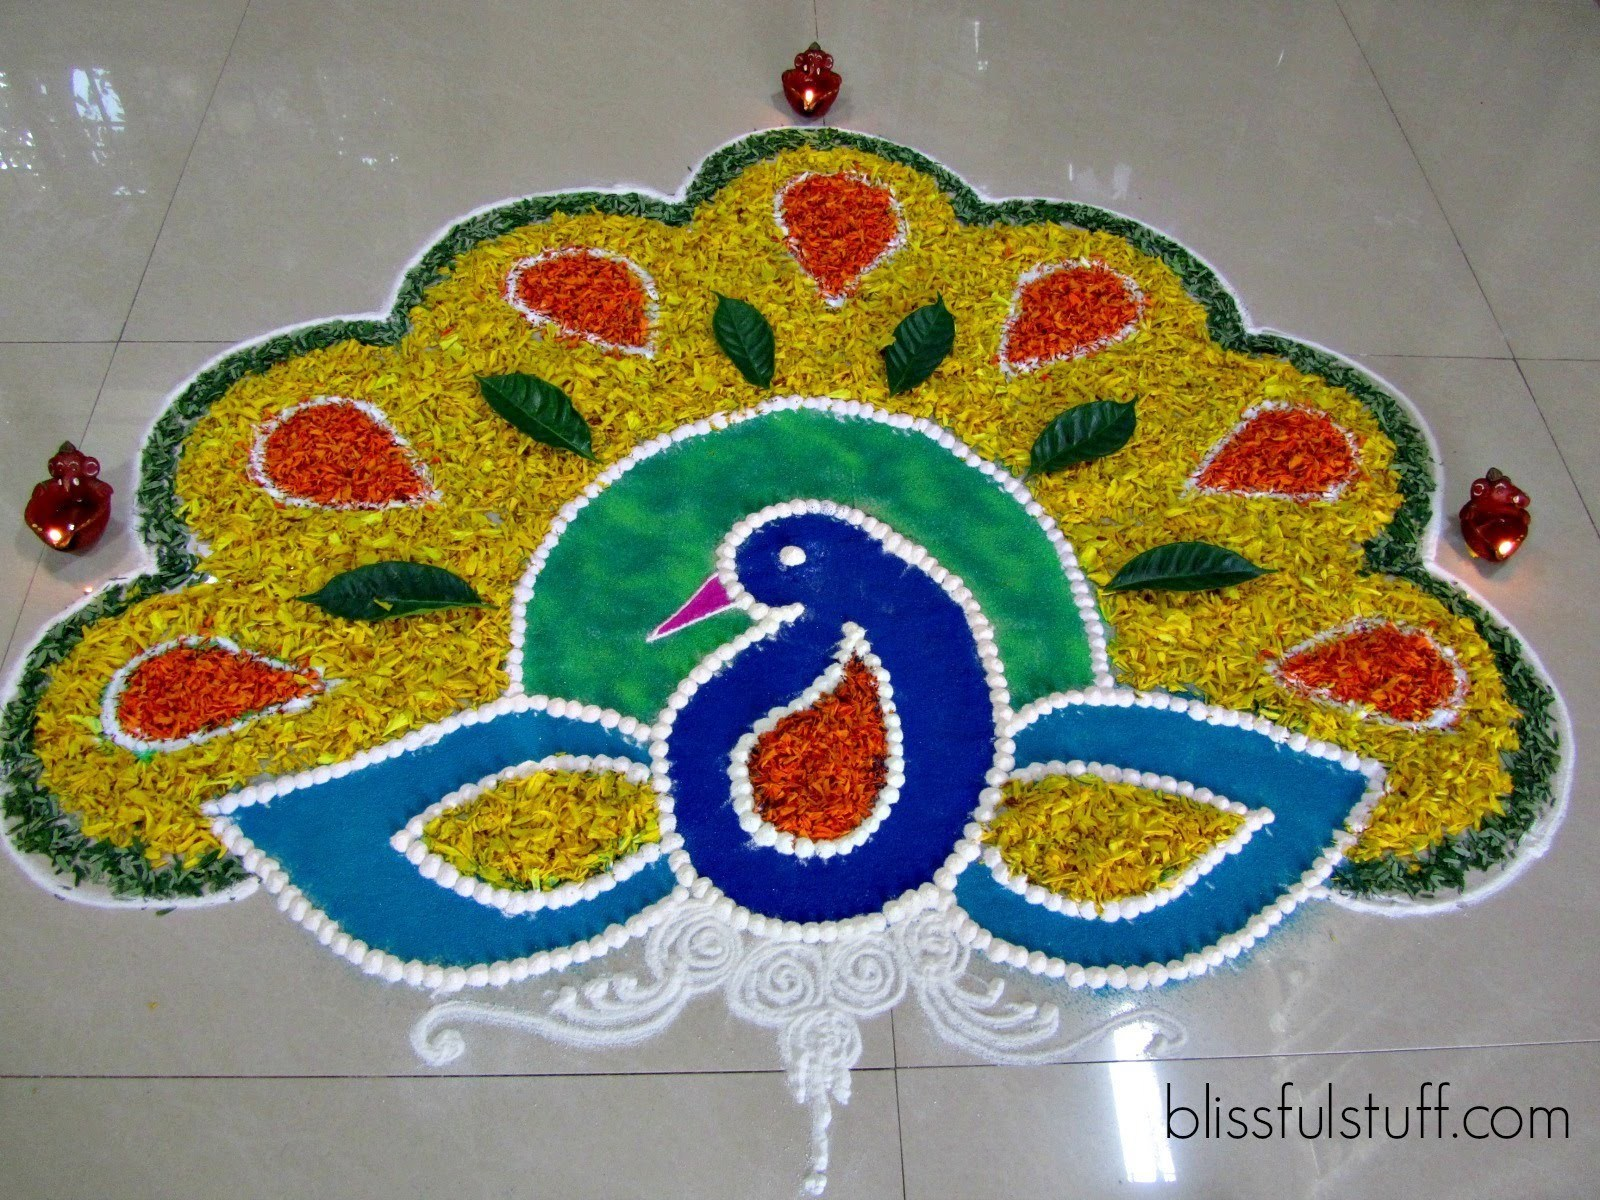 Peacock Rangoli Design for Deepavali